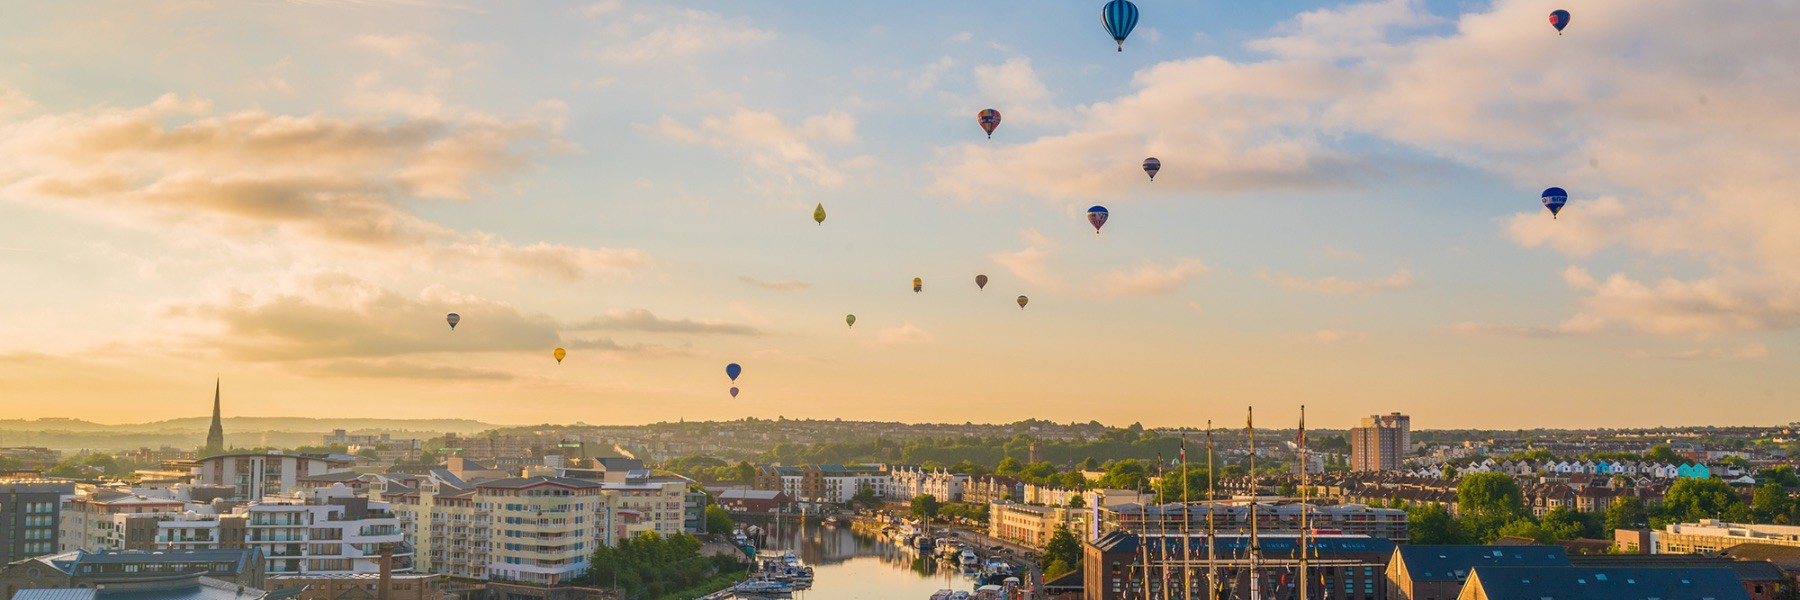 How to sell your house fast in Bristol